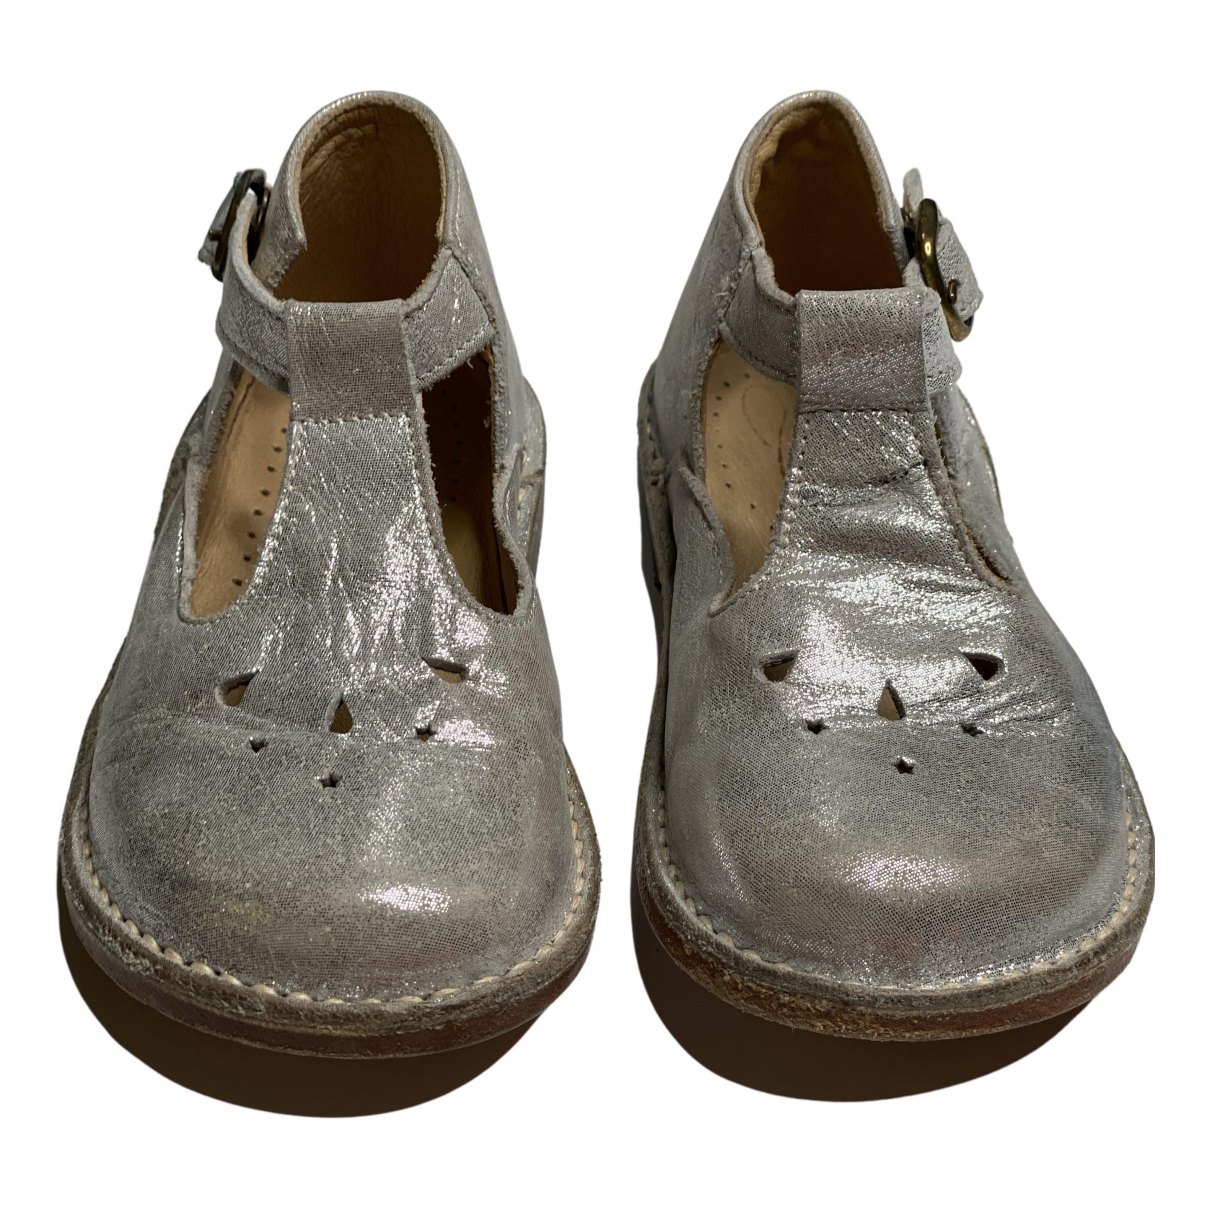 Bonpoint N Silver Leather Flats for Kids 23 FR